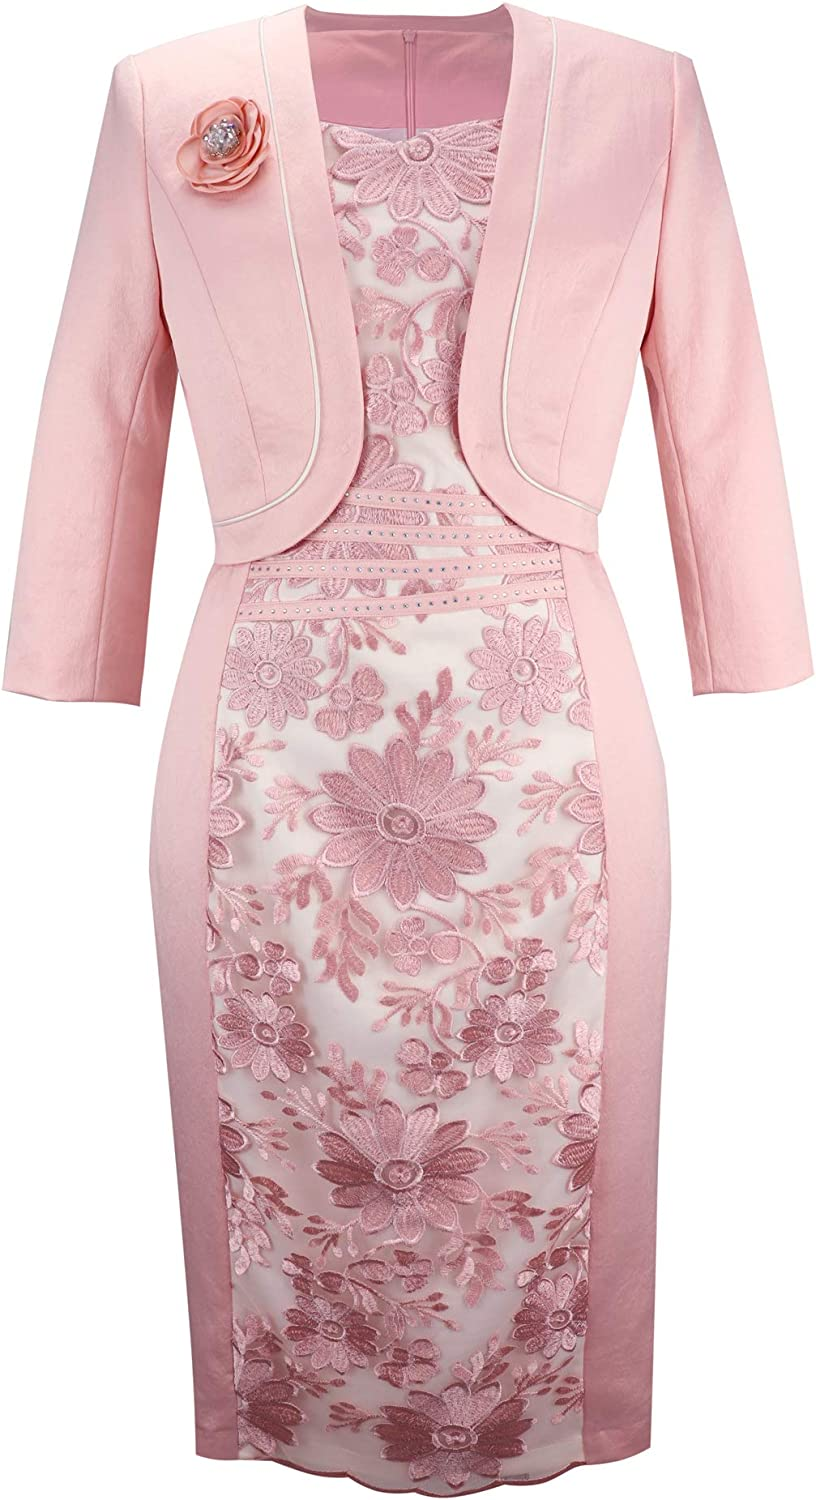 YIMIYI Women's Three Quarter Sleeve Plus Size Jacket with Straight Dress Two-Piece Suit